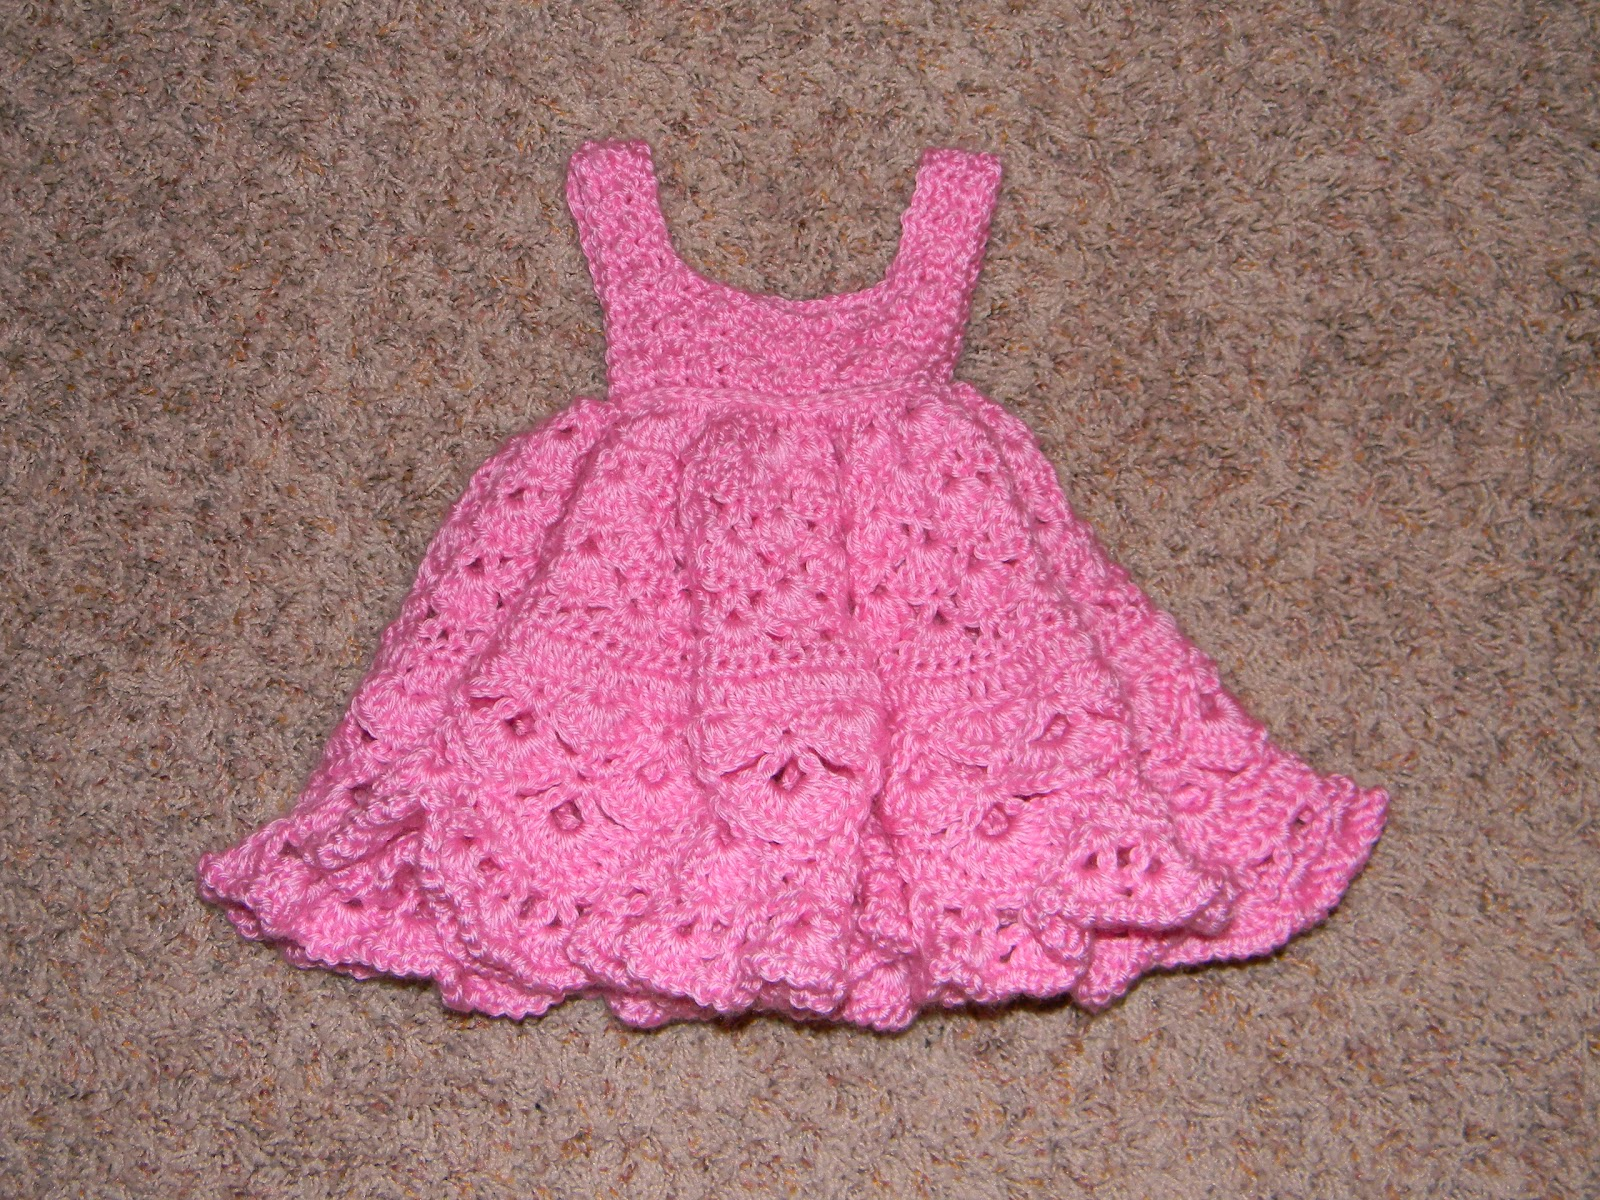 Sassys Crafty Creations: Crochet Baby Girl Dress